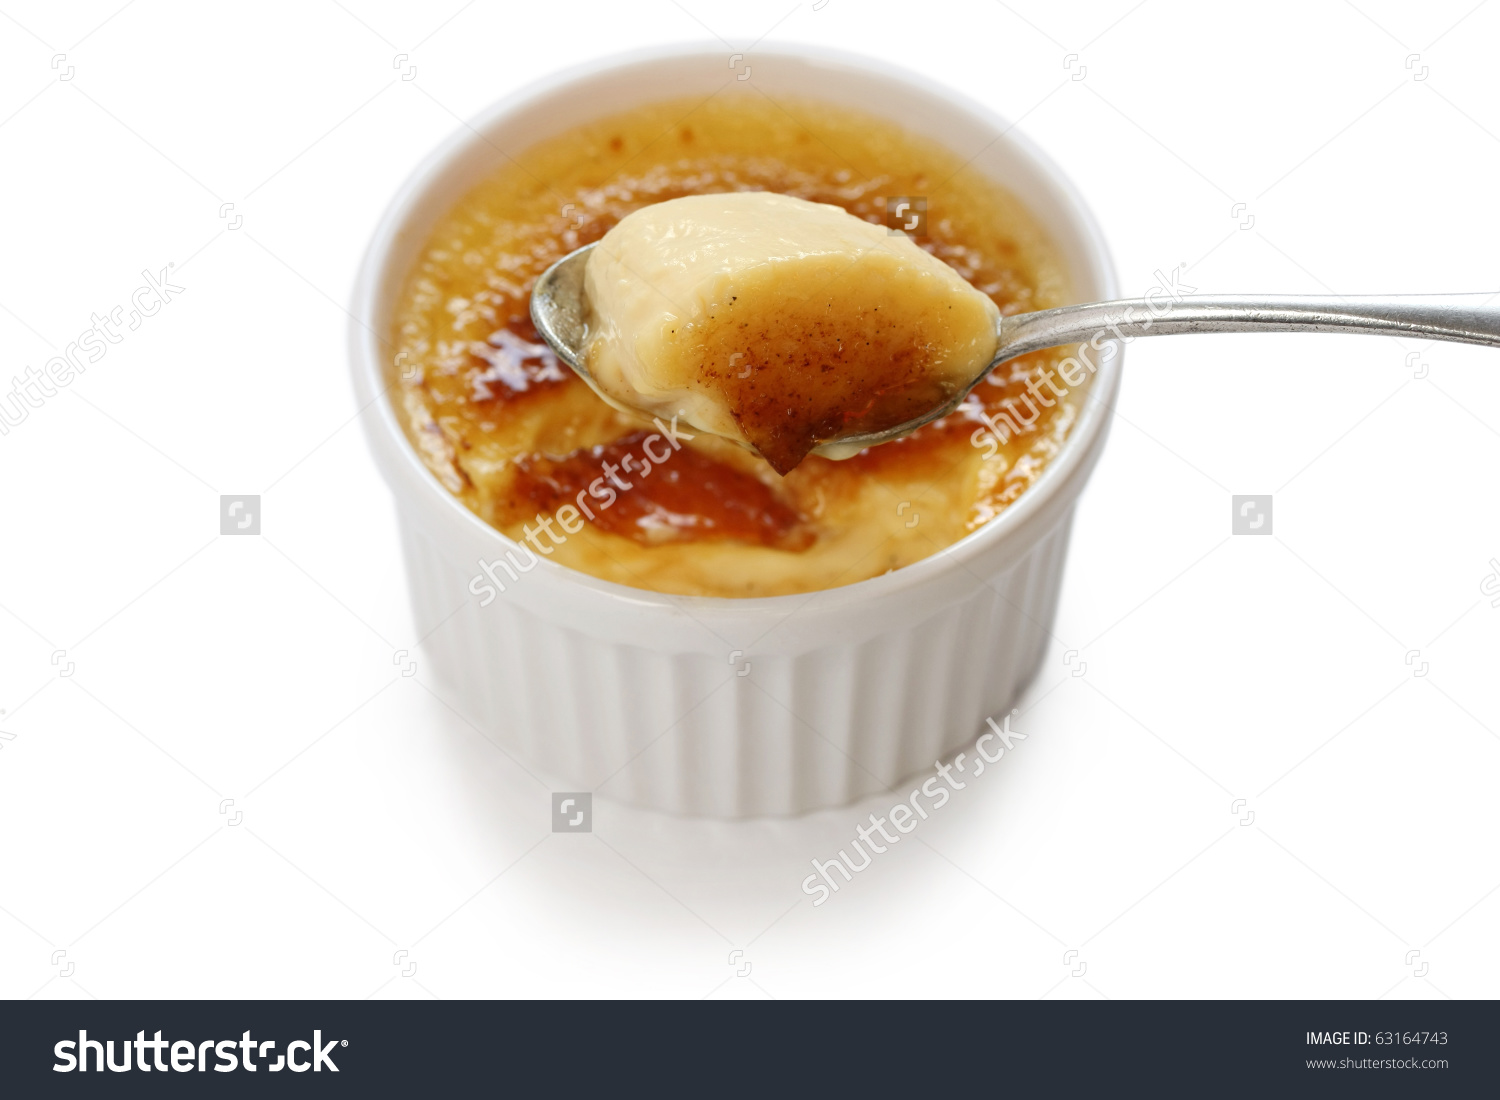 Creme Brulee Cream Brulee Burnt Cream Stock Photo 63164743.